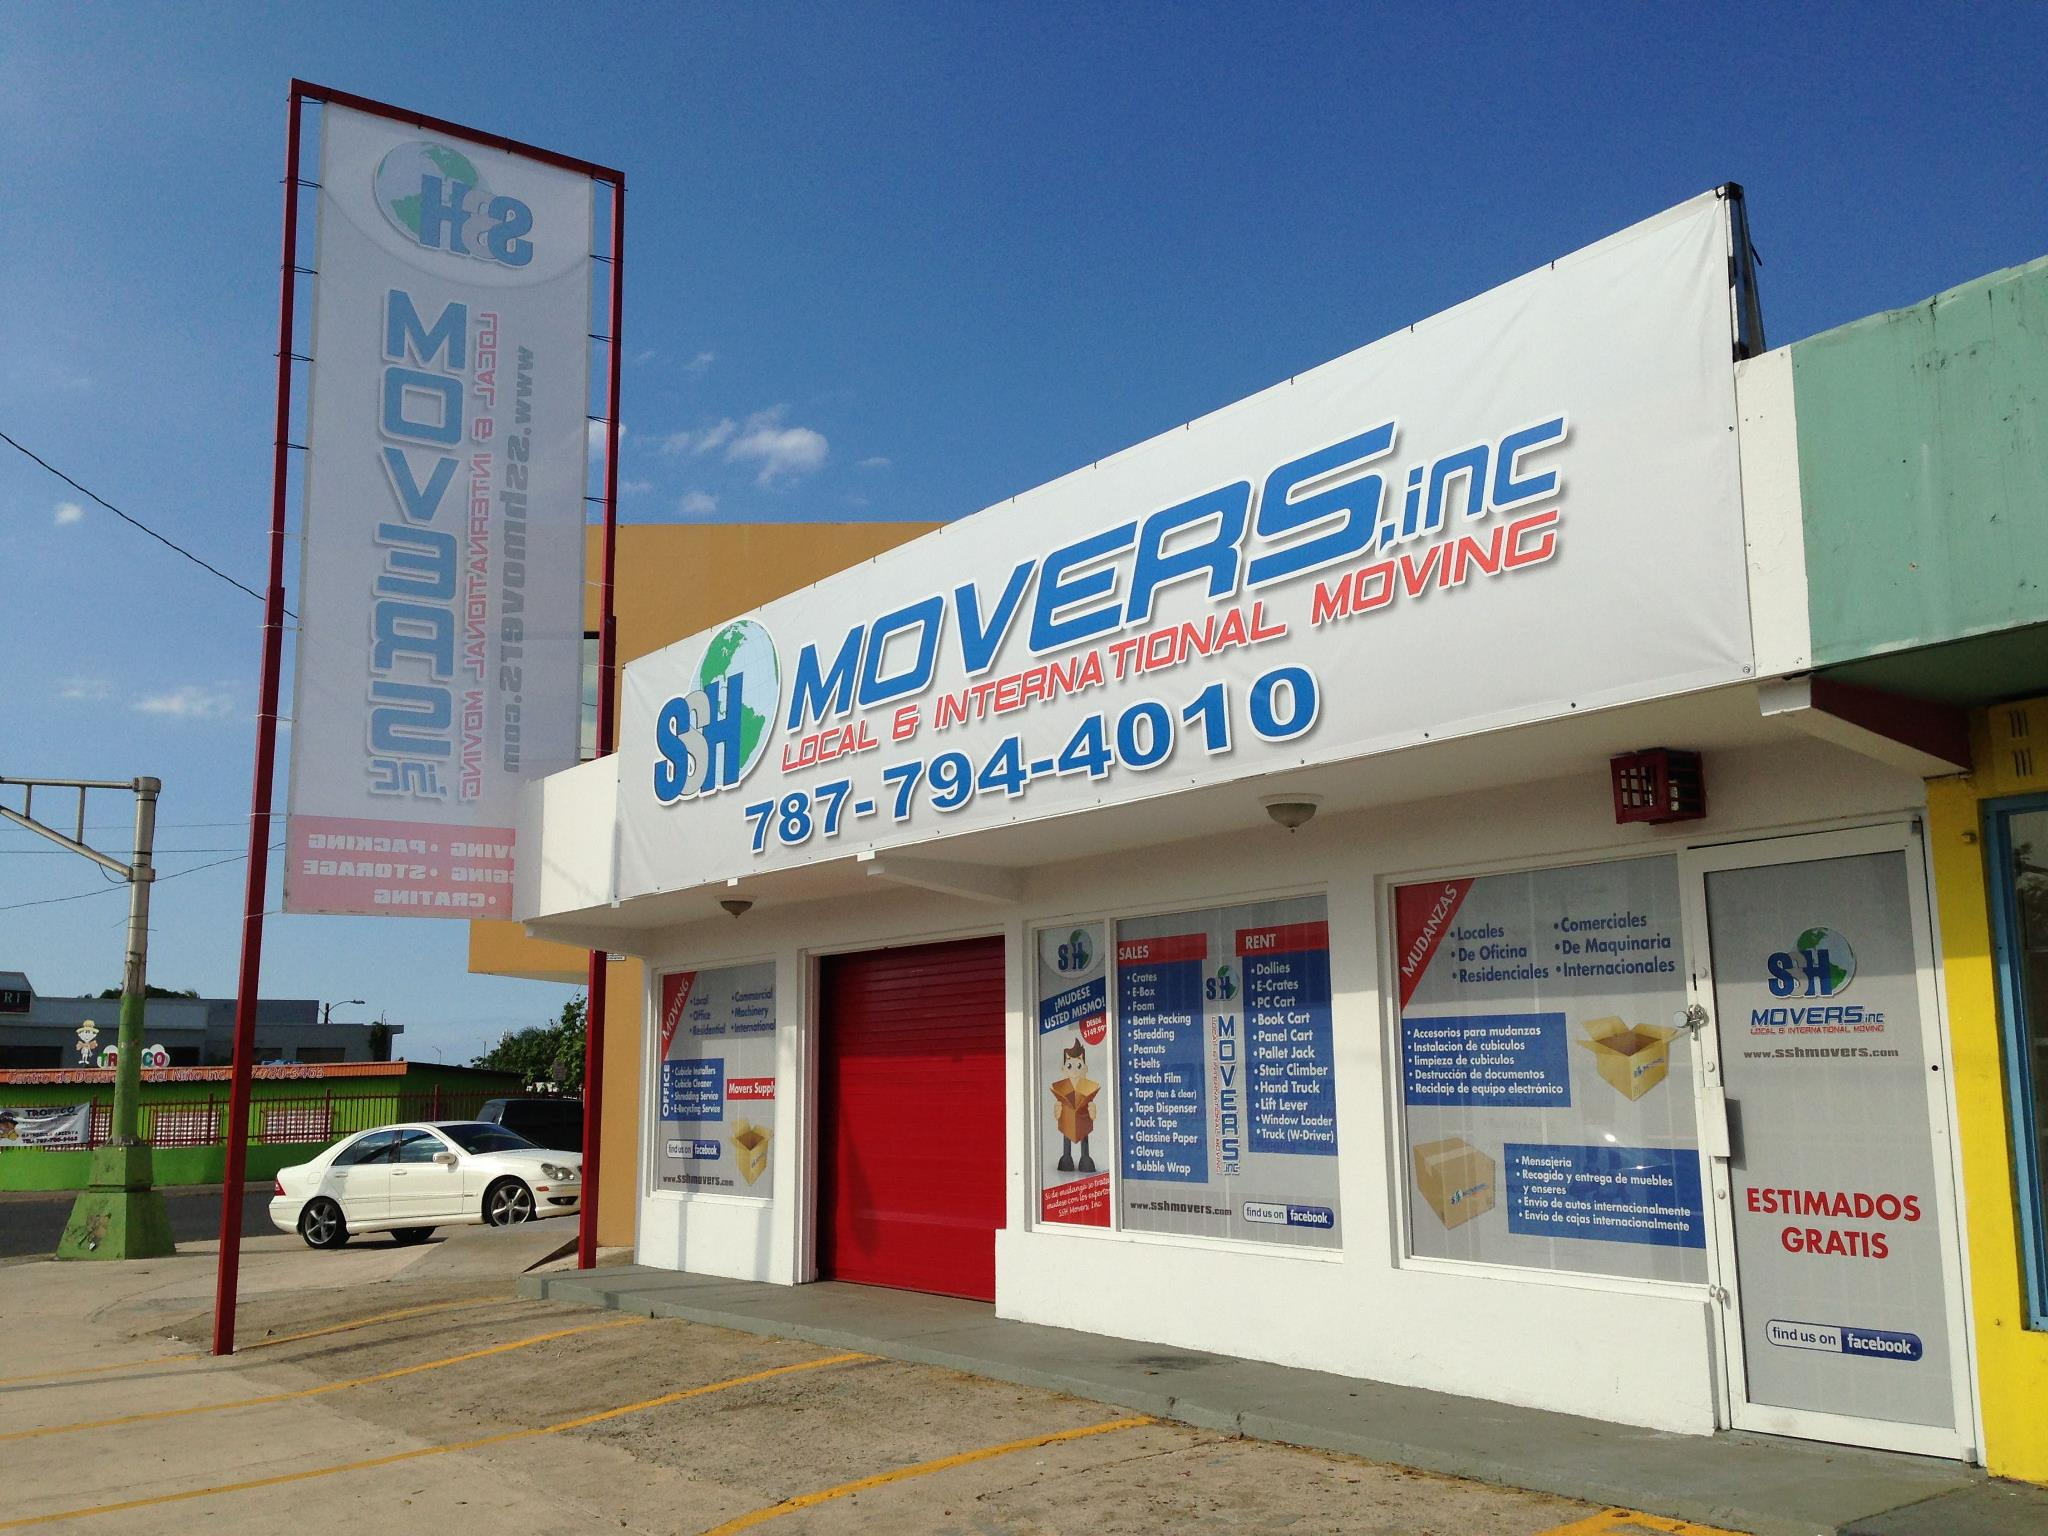 Oficinas de SSH Movers Inc.